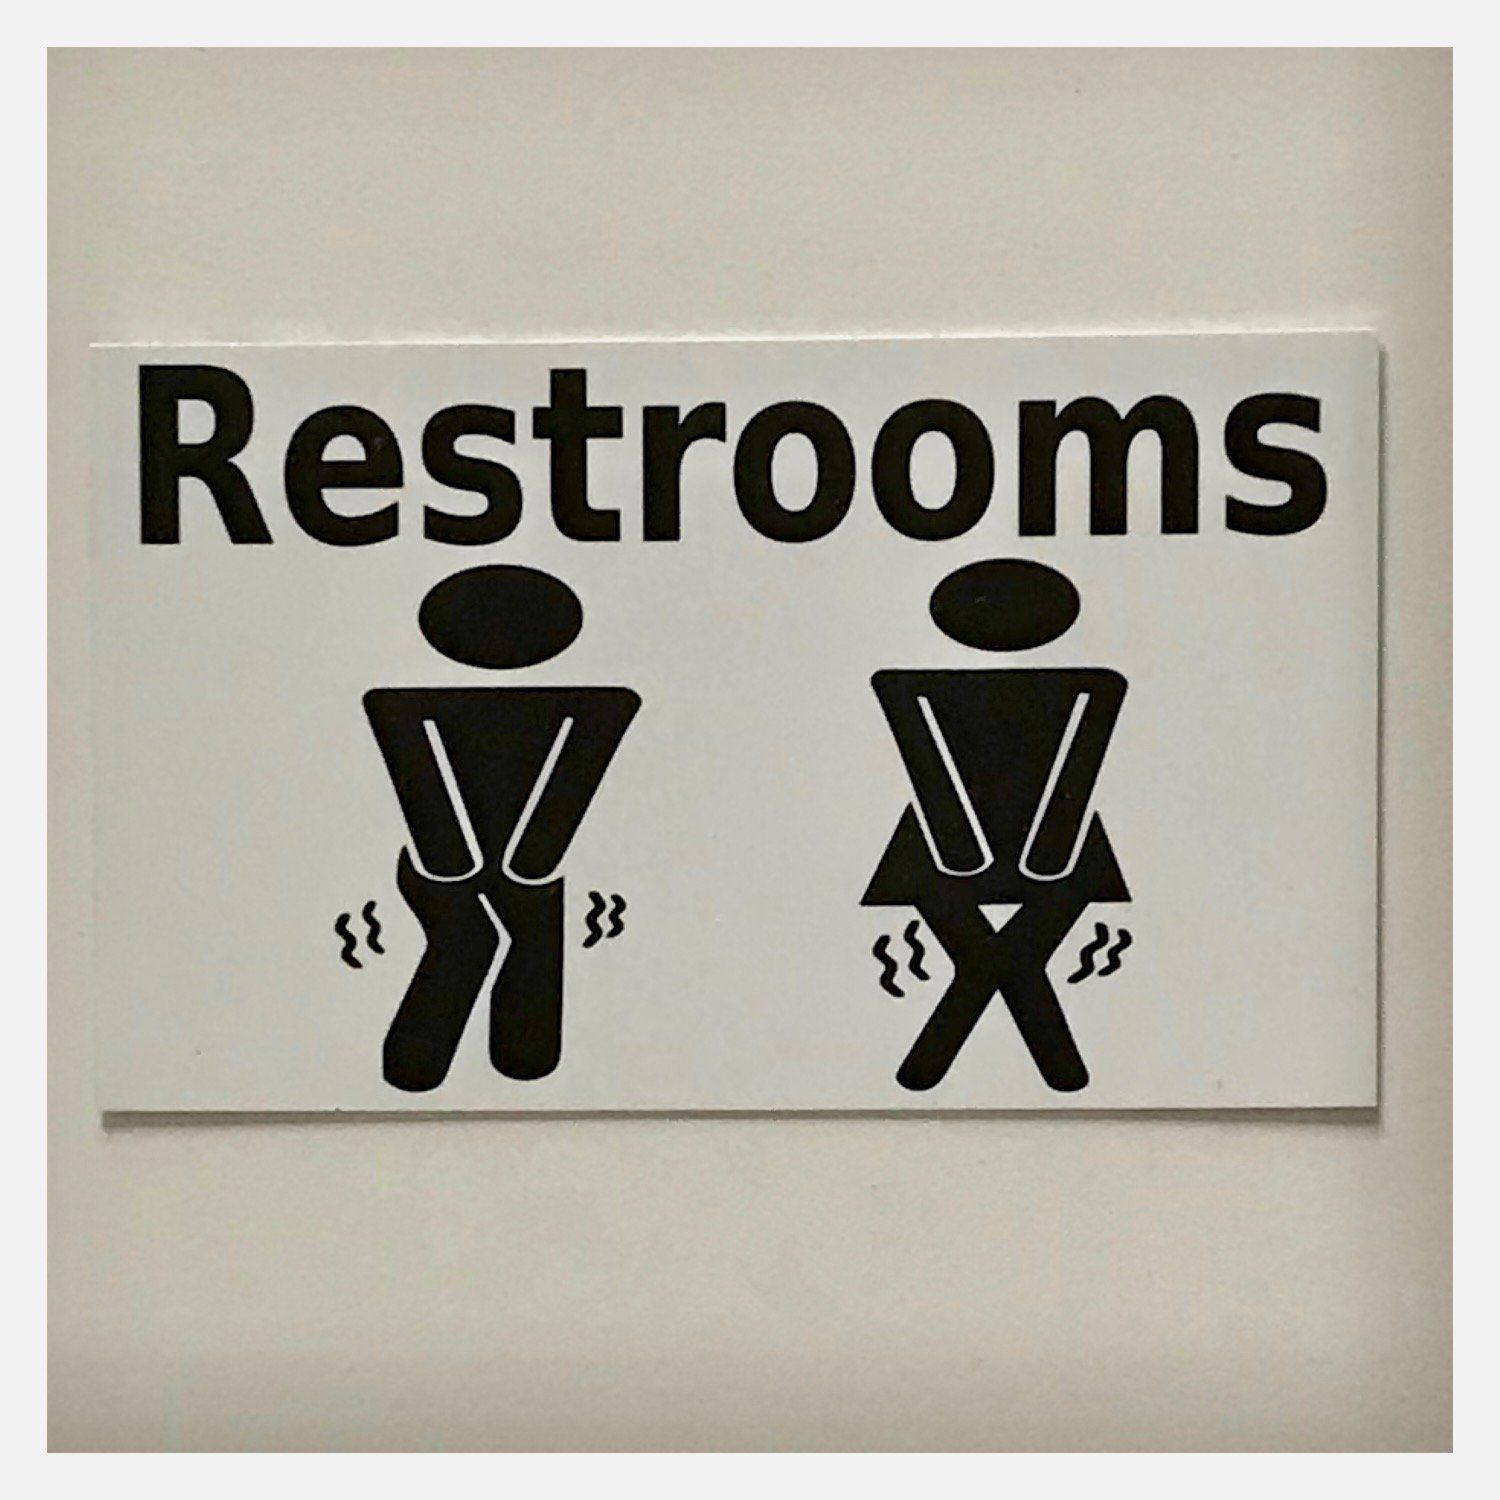 Restrooms Restroom Male Female Toilet Door White Sign